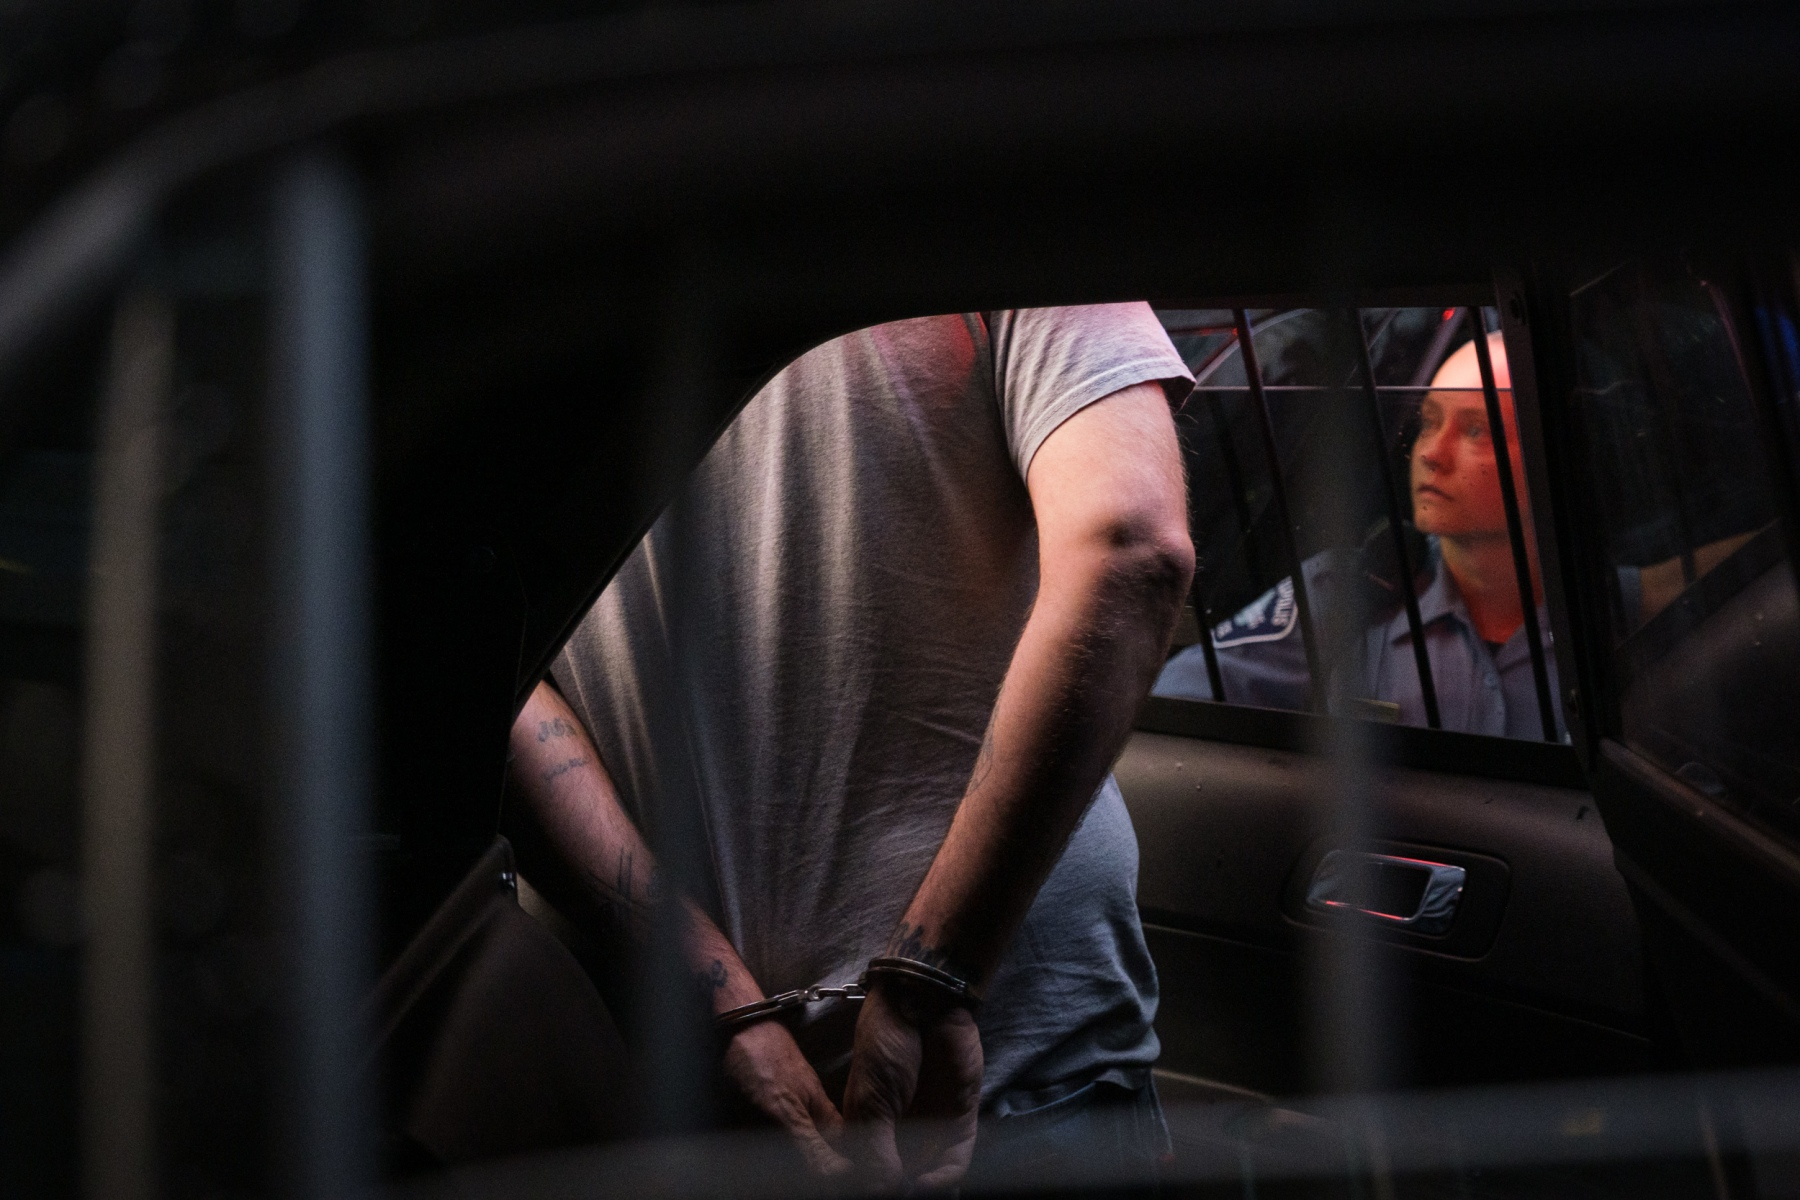 Minneapolis police officers arrest a bystander and place him in the squad car on August 26, 2020.